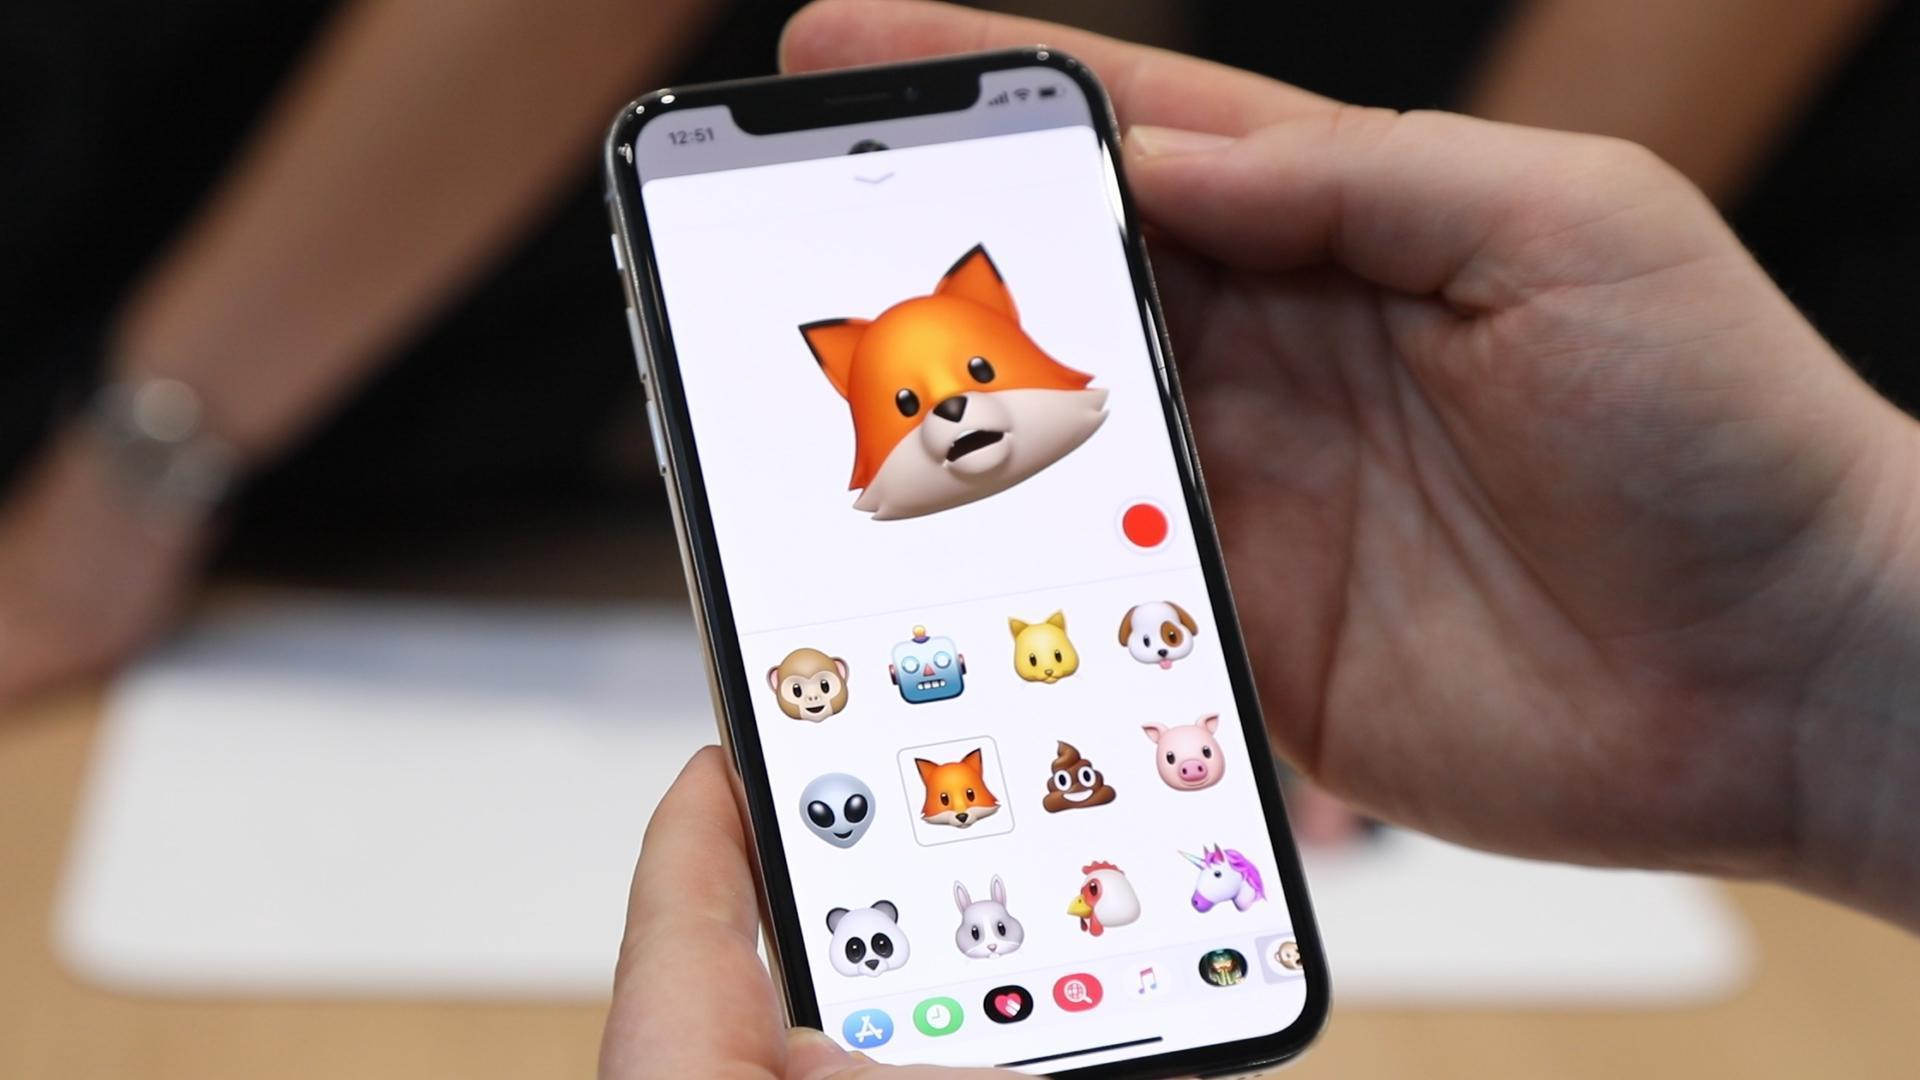 iPhone X hands on